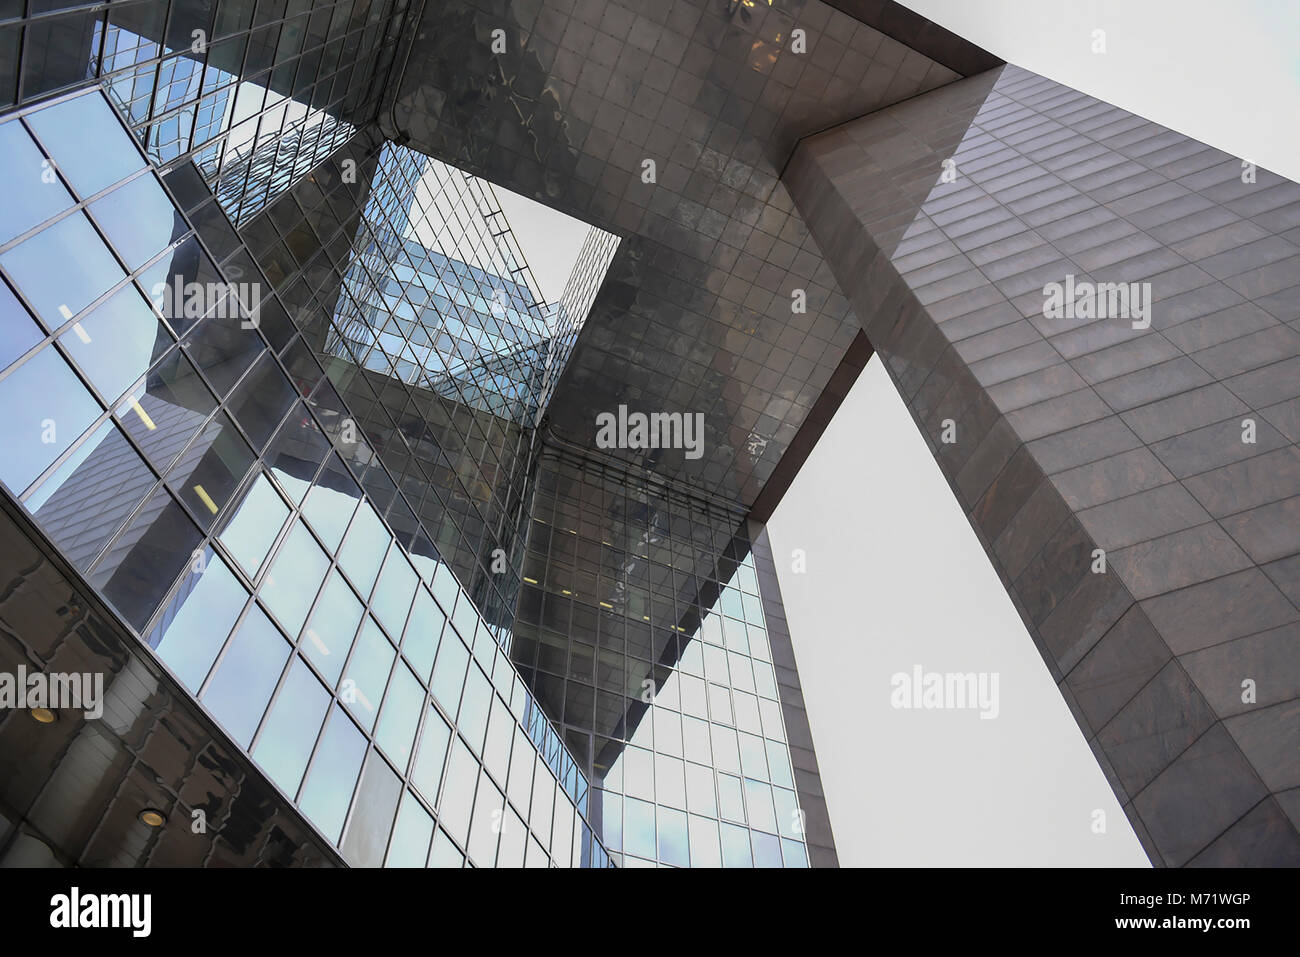 A worms eye view of tall modern office building on the South Bank, Southwark, London - Stock Image